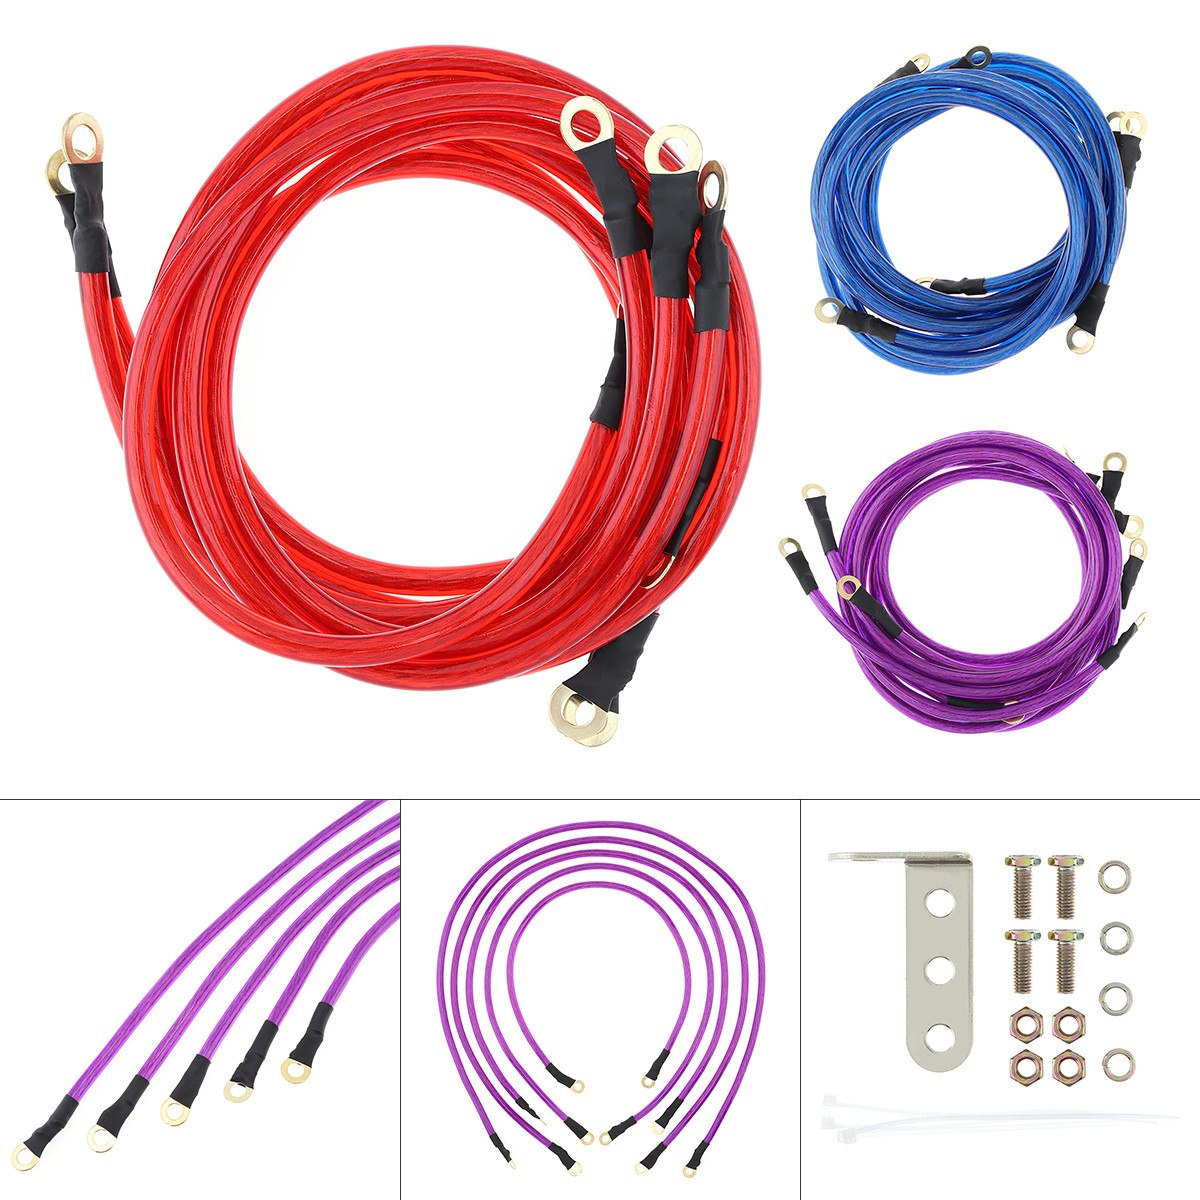 5 Point Car Universal Earth Ground Cables Grounding Wire System Kit High Performance Improve Power for Car Truck